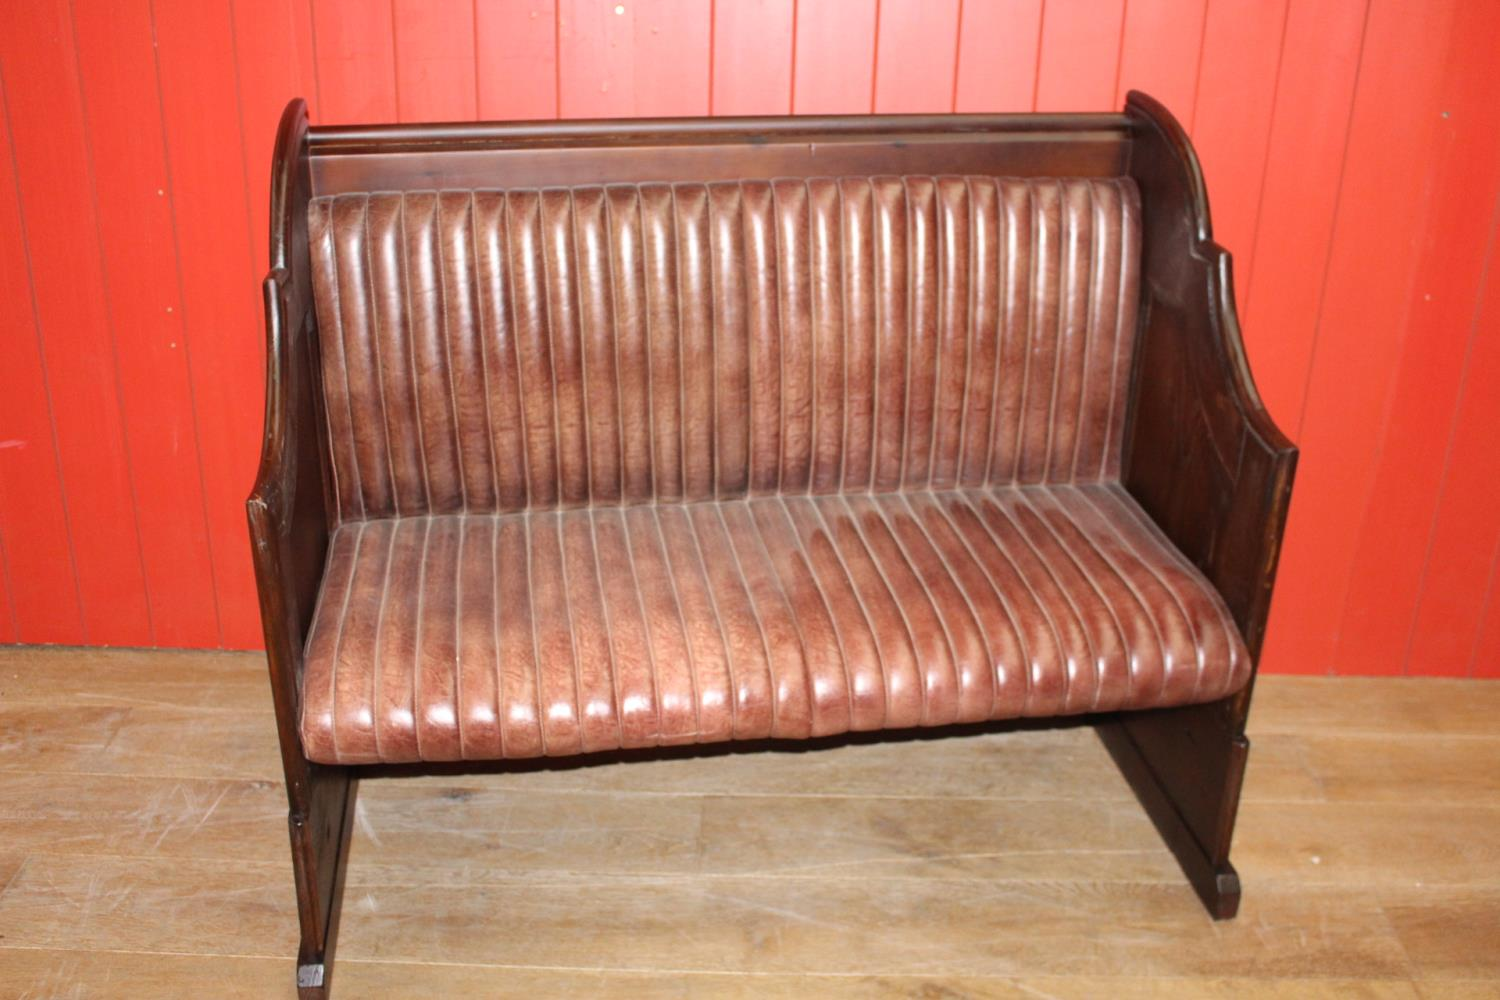 Leather upholstered wooden bench